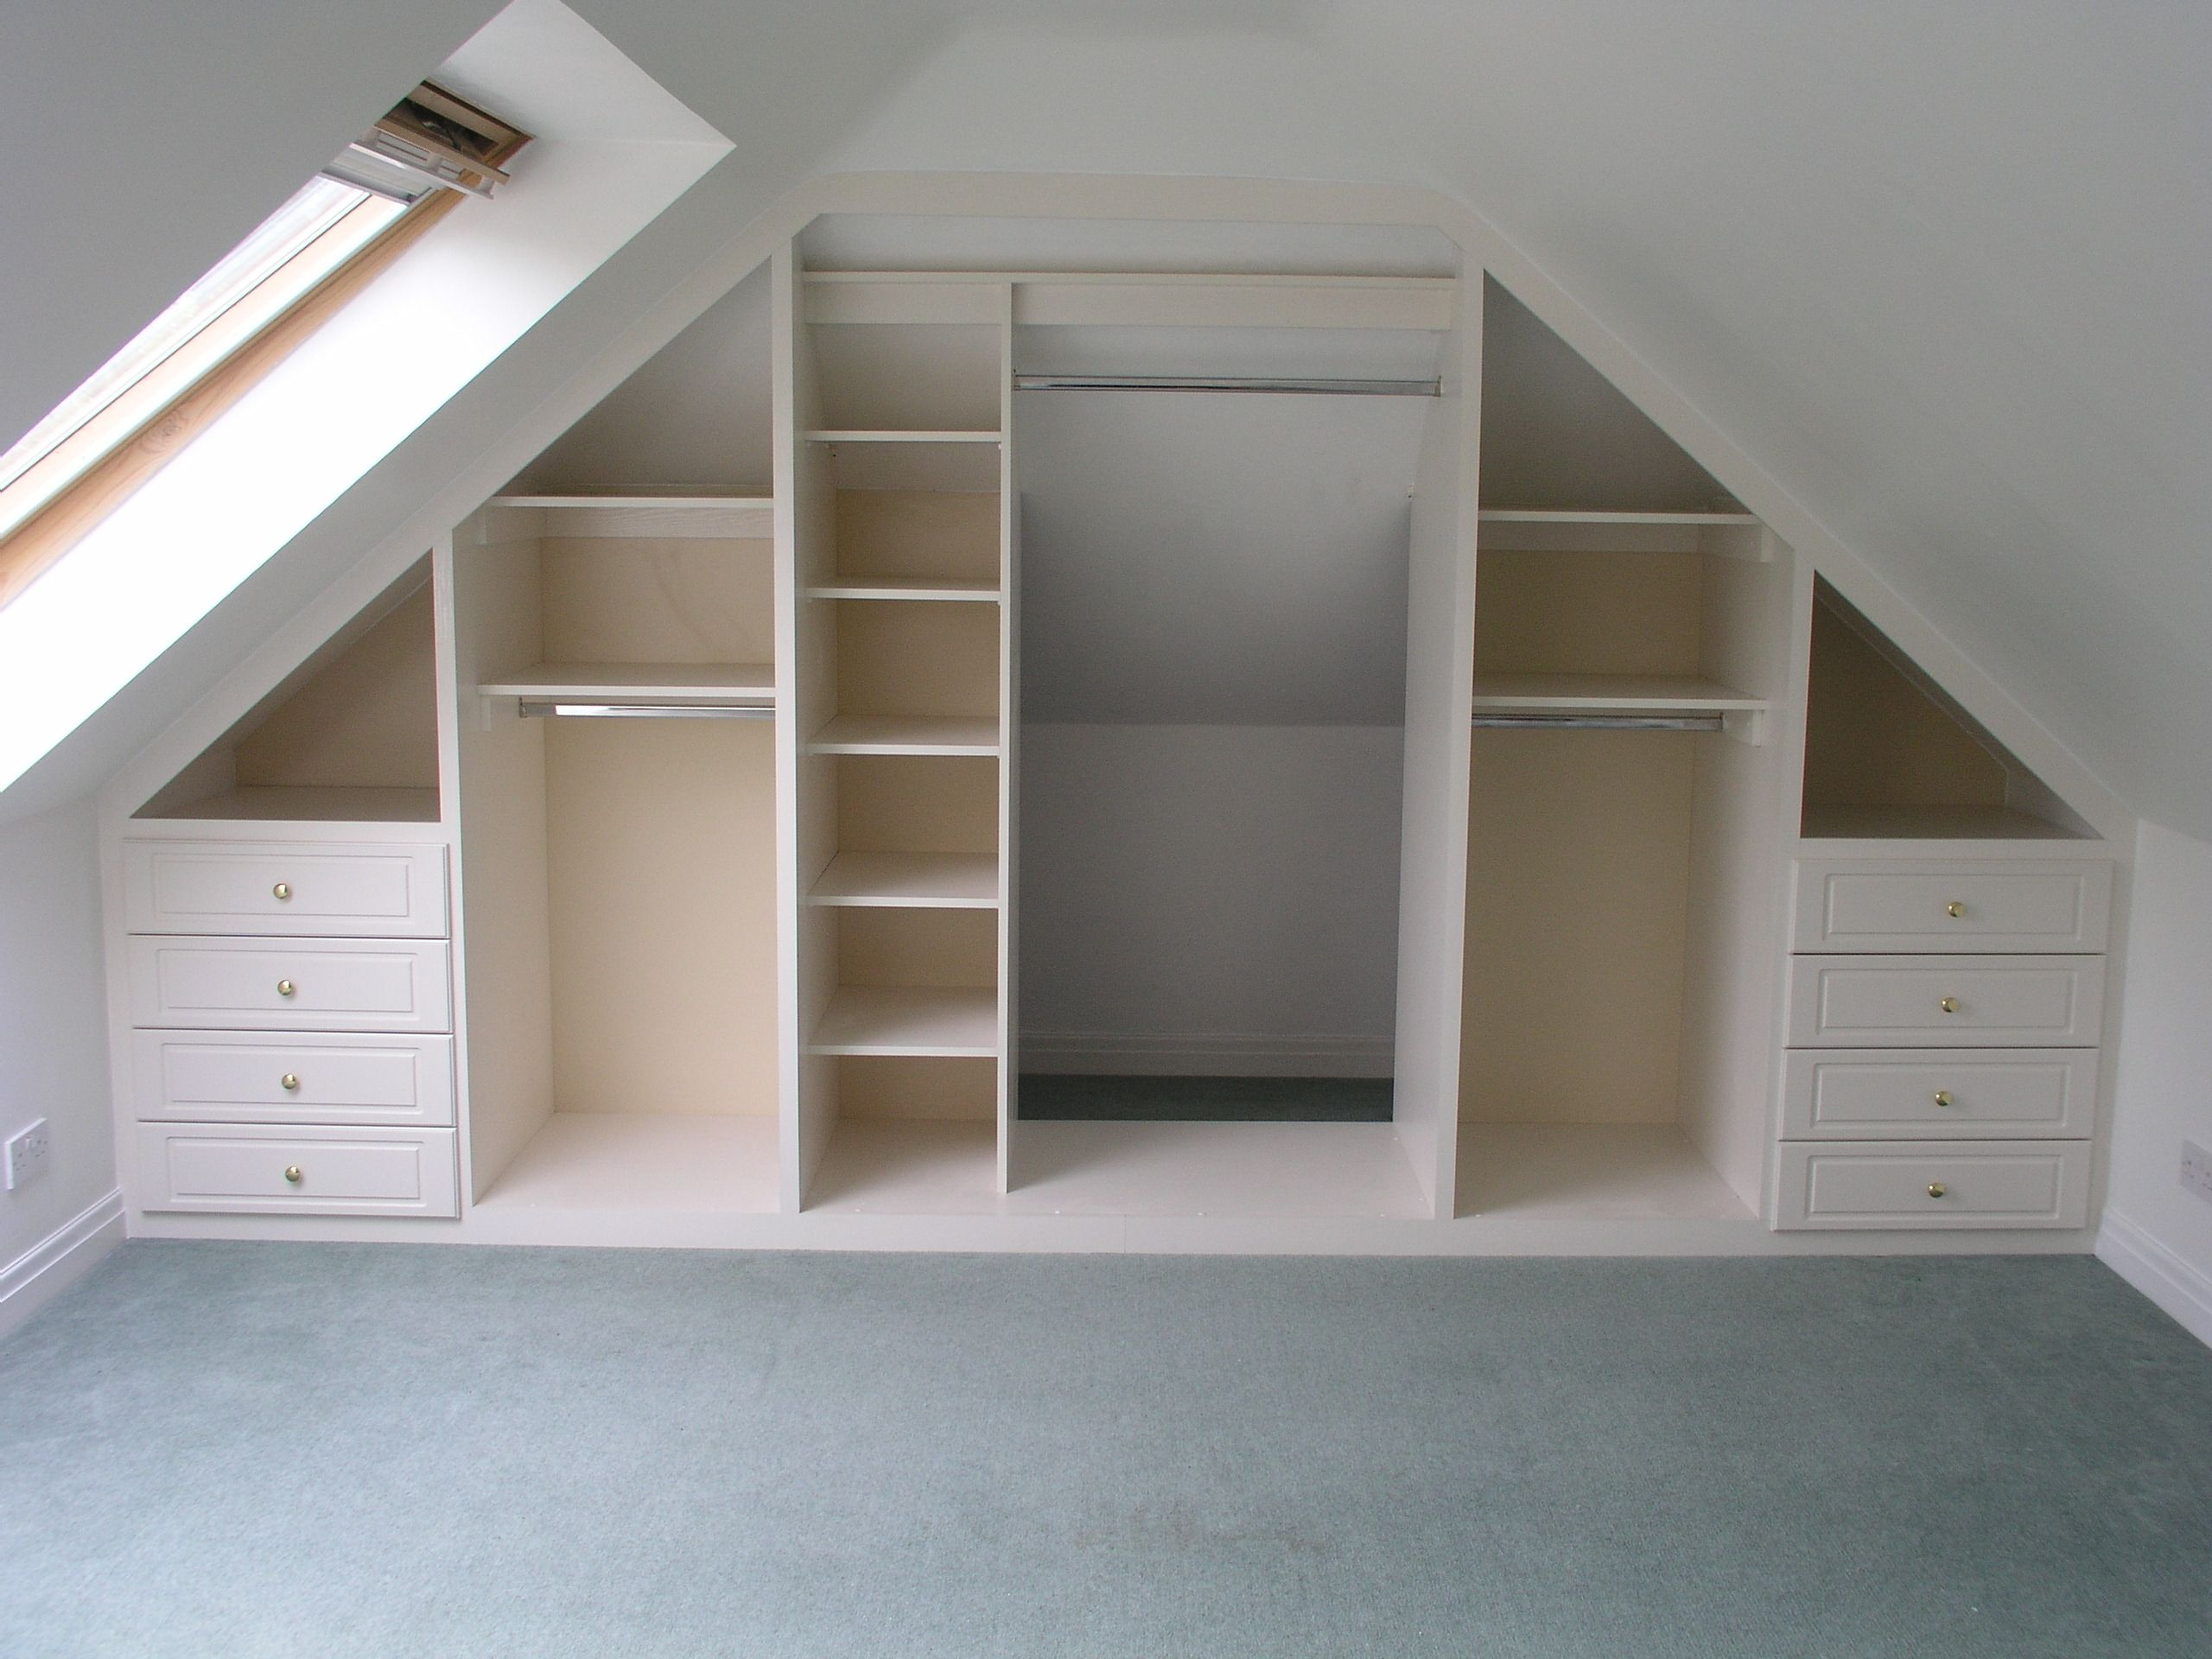 Loft Storage Best 25 Attic Storage Ideas On Pinterest Attic Renovation